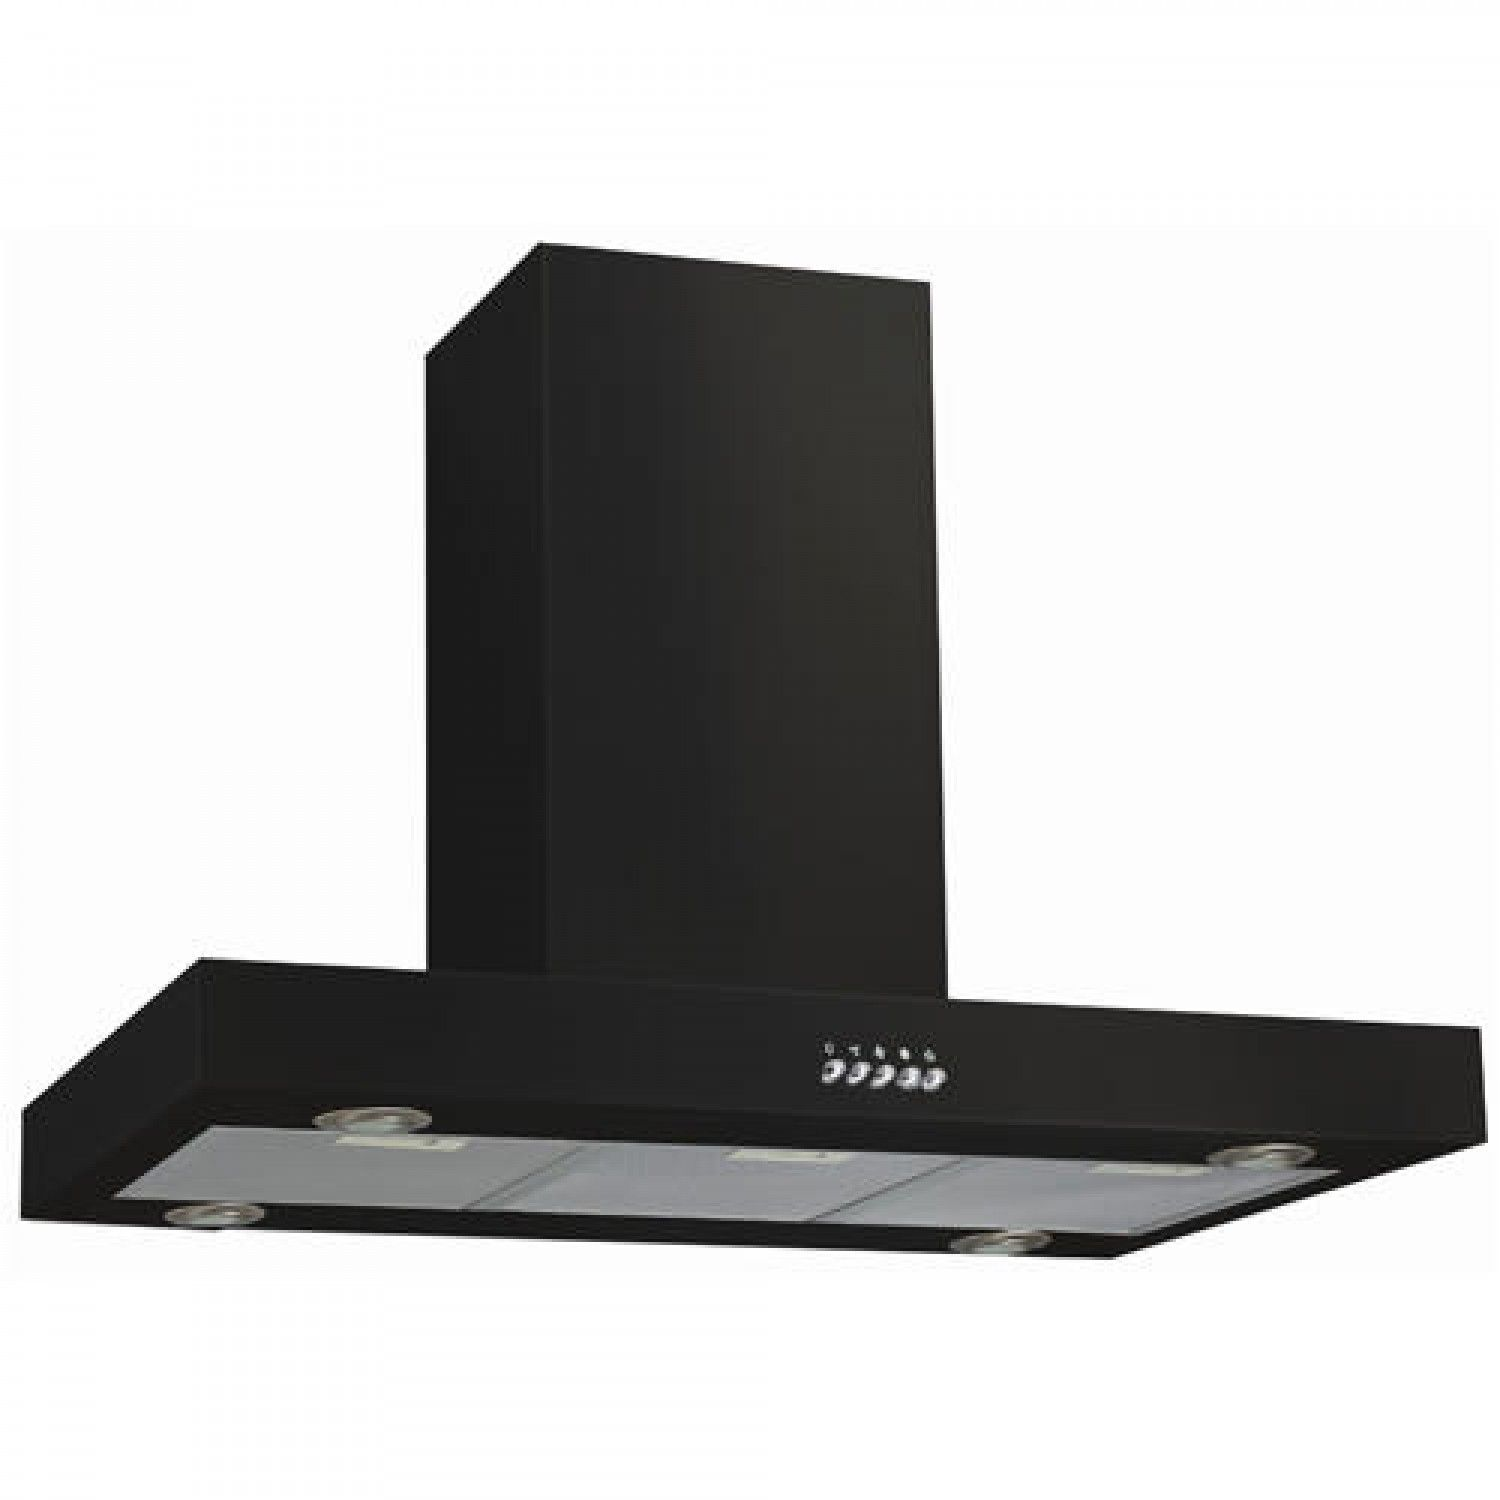 36 Maestro Series Stainless Steel Black Island Range Hood 600 Cfm Kitchen Island Range Hood Matte Black Kitchen Stainless Steel Island